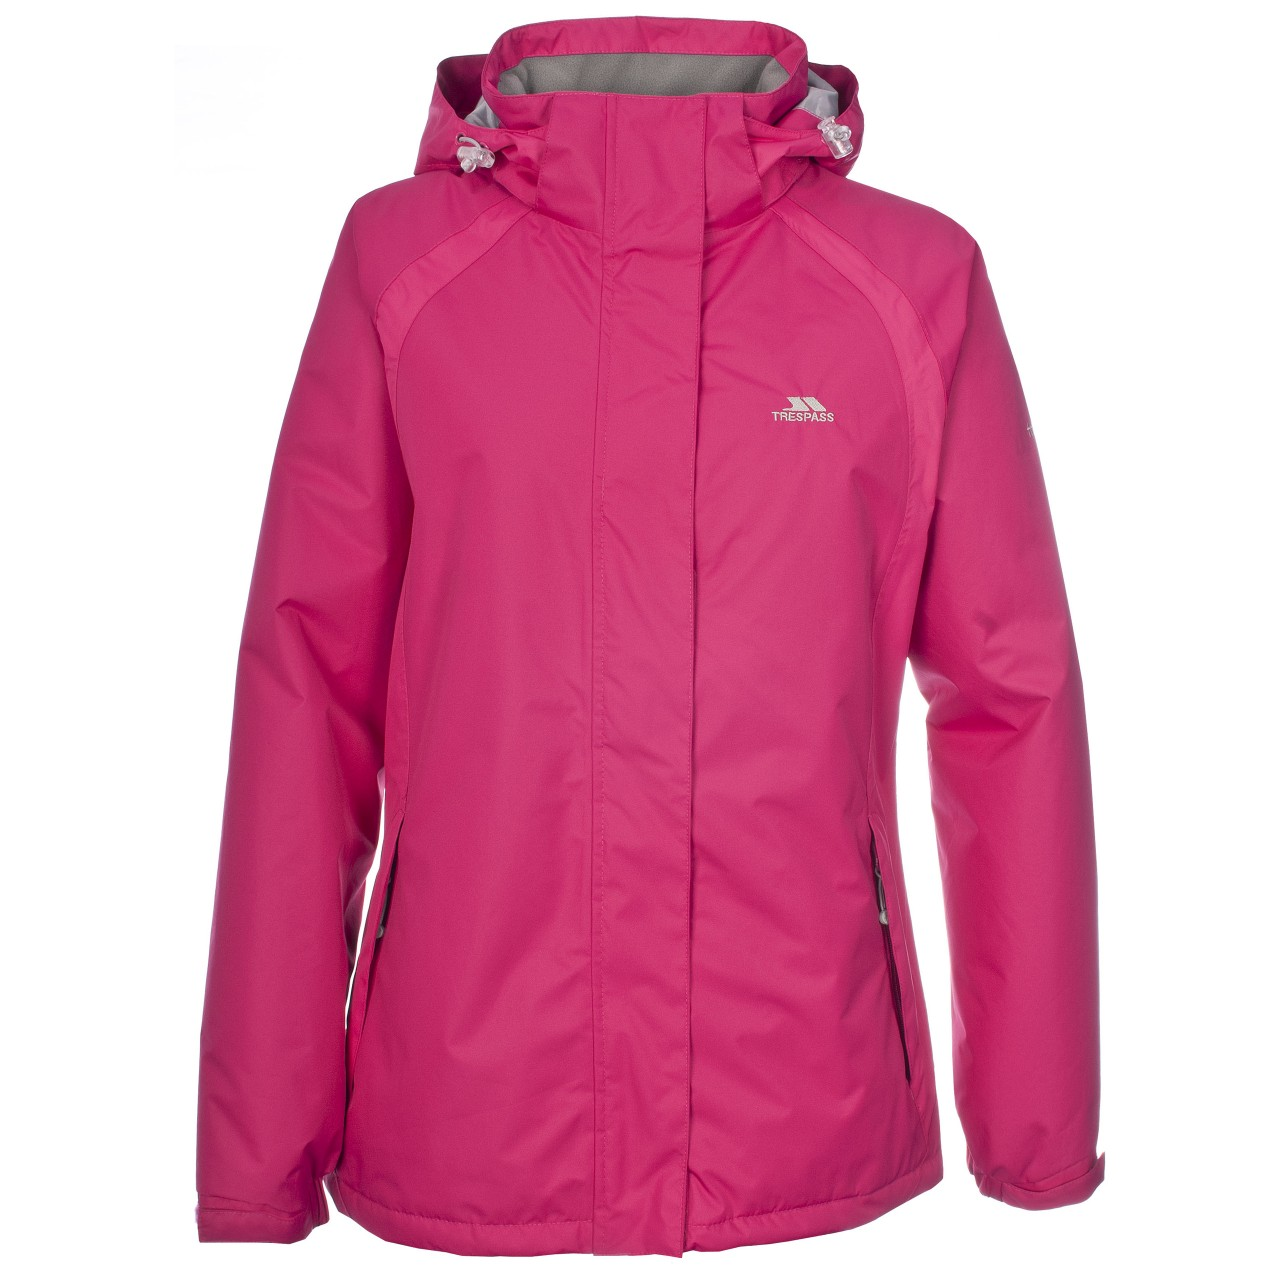 Kona Waterproof Jacket Review